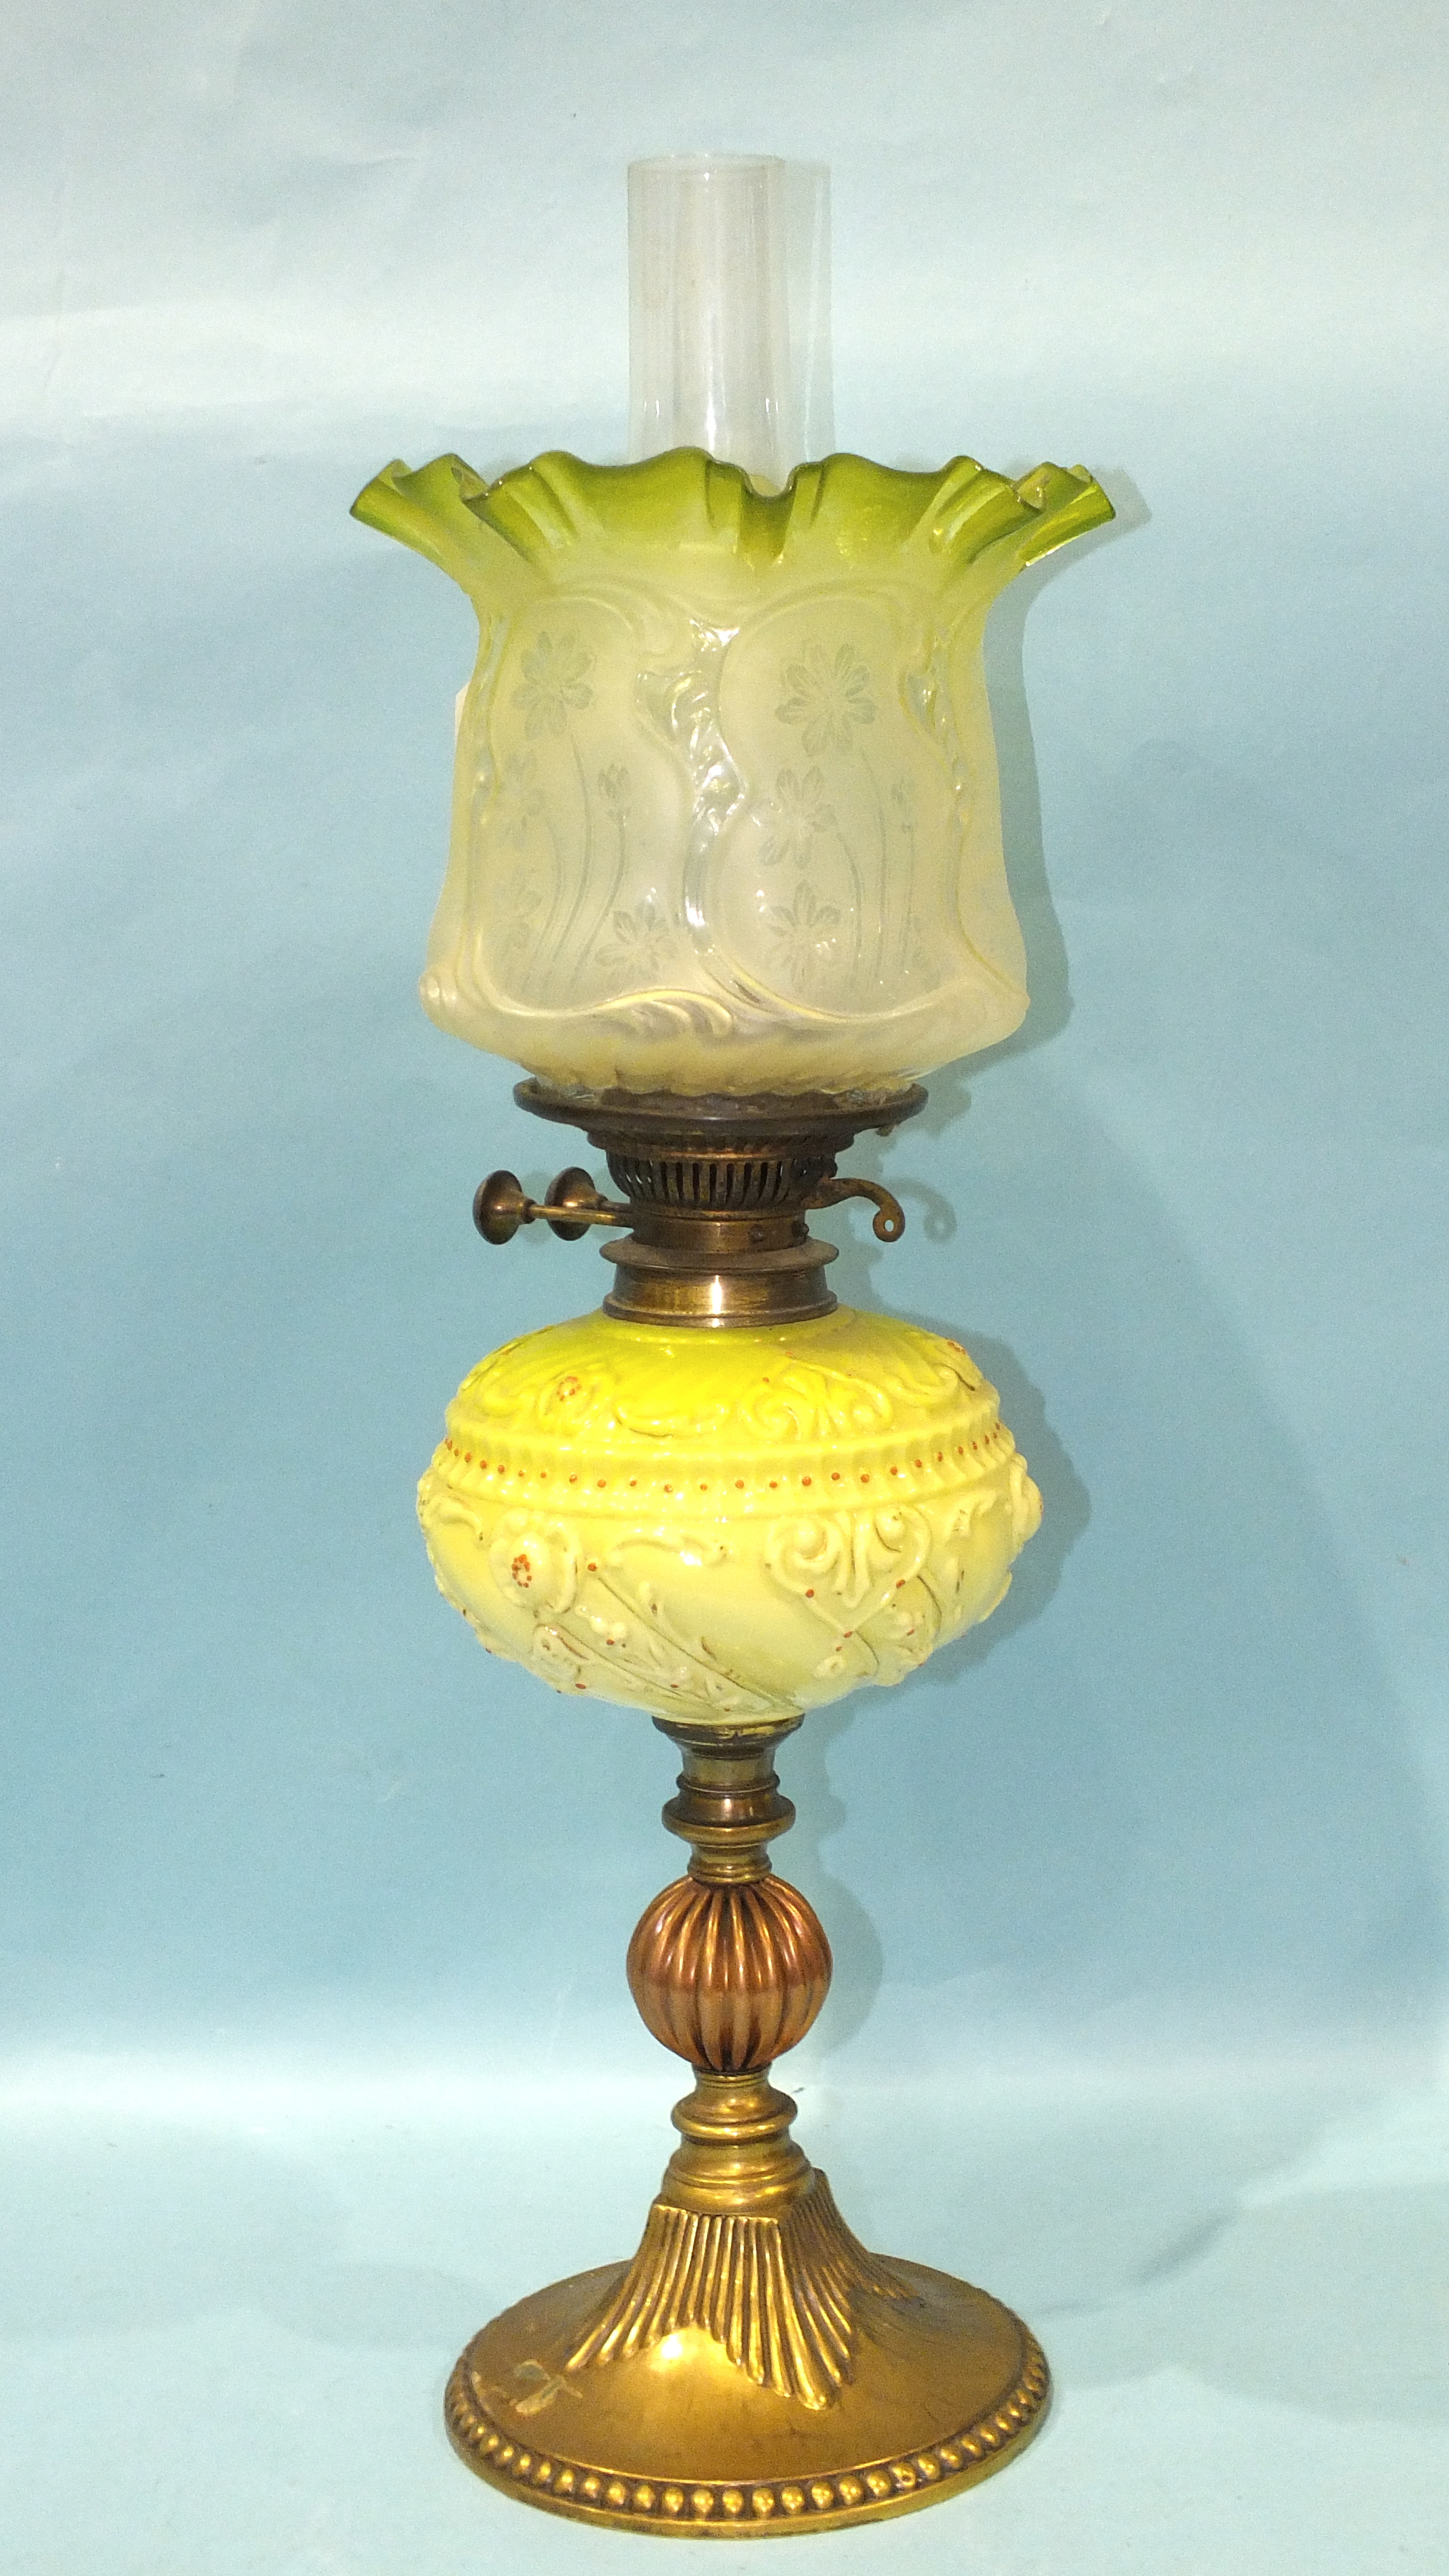 A Victorian brass and copper oil lamp with moulded pale green glass reservoir and etched glass